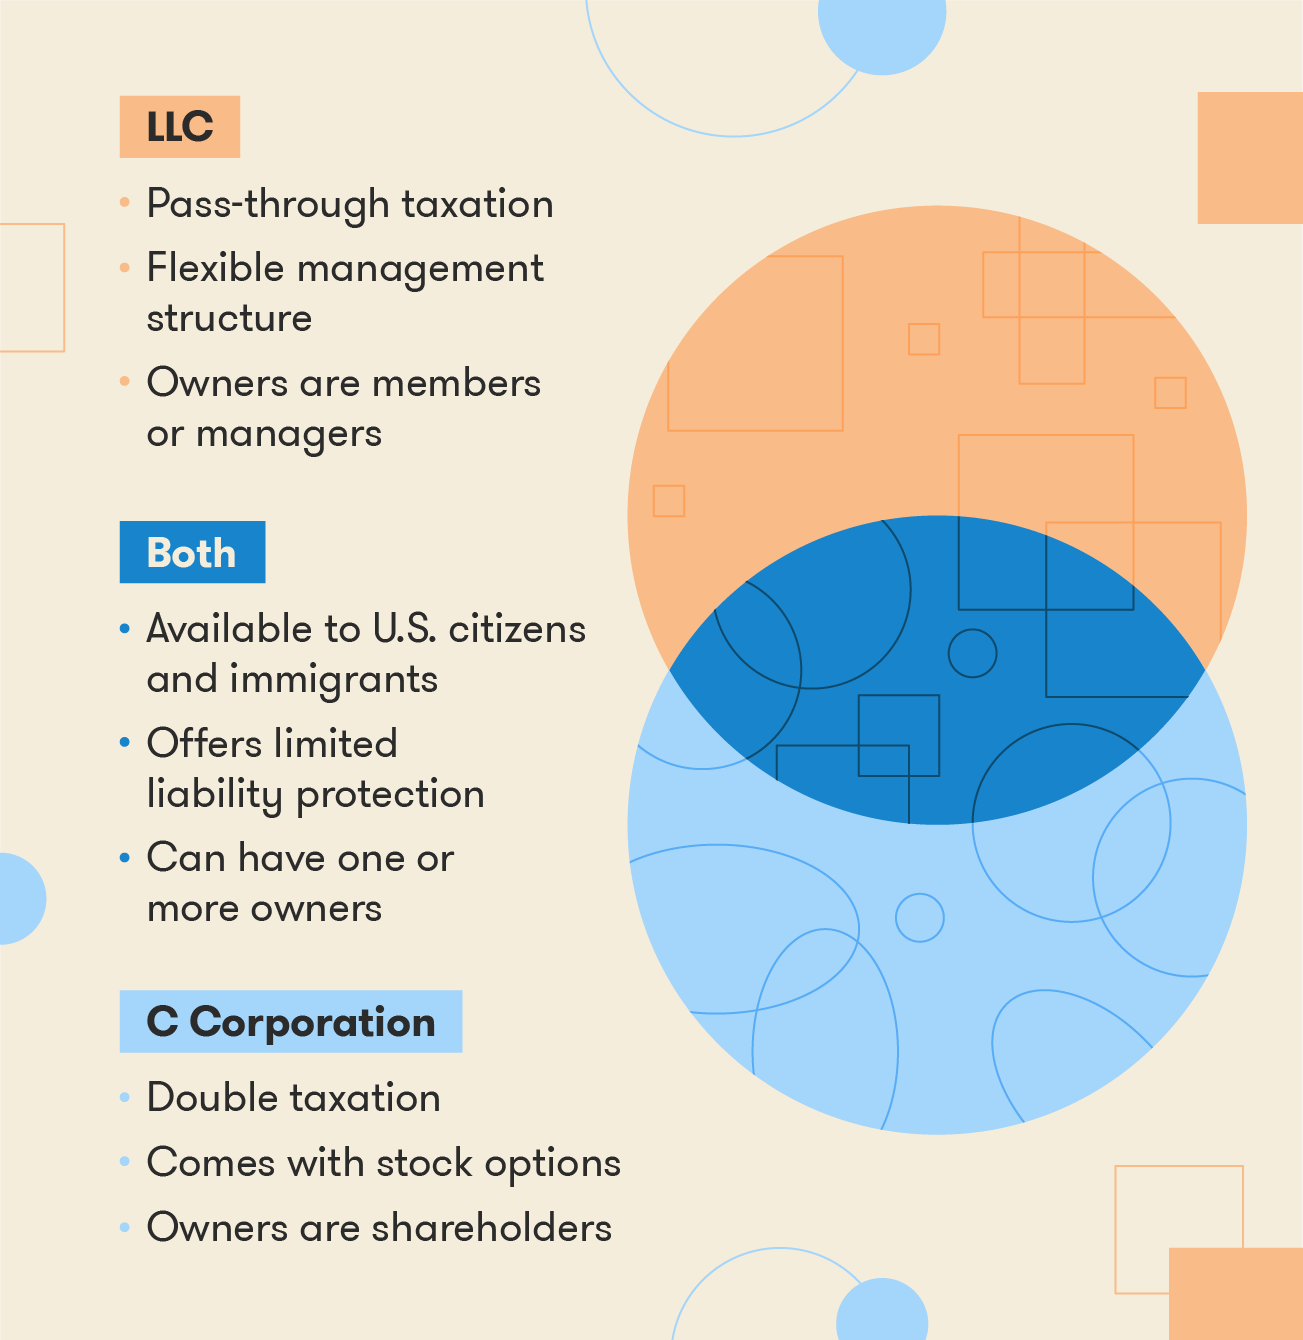 Venn diagram depicting differences between LLC and C Corporation